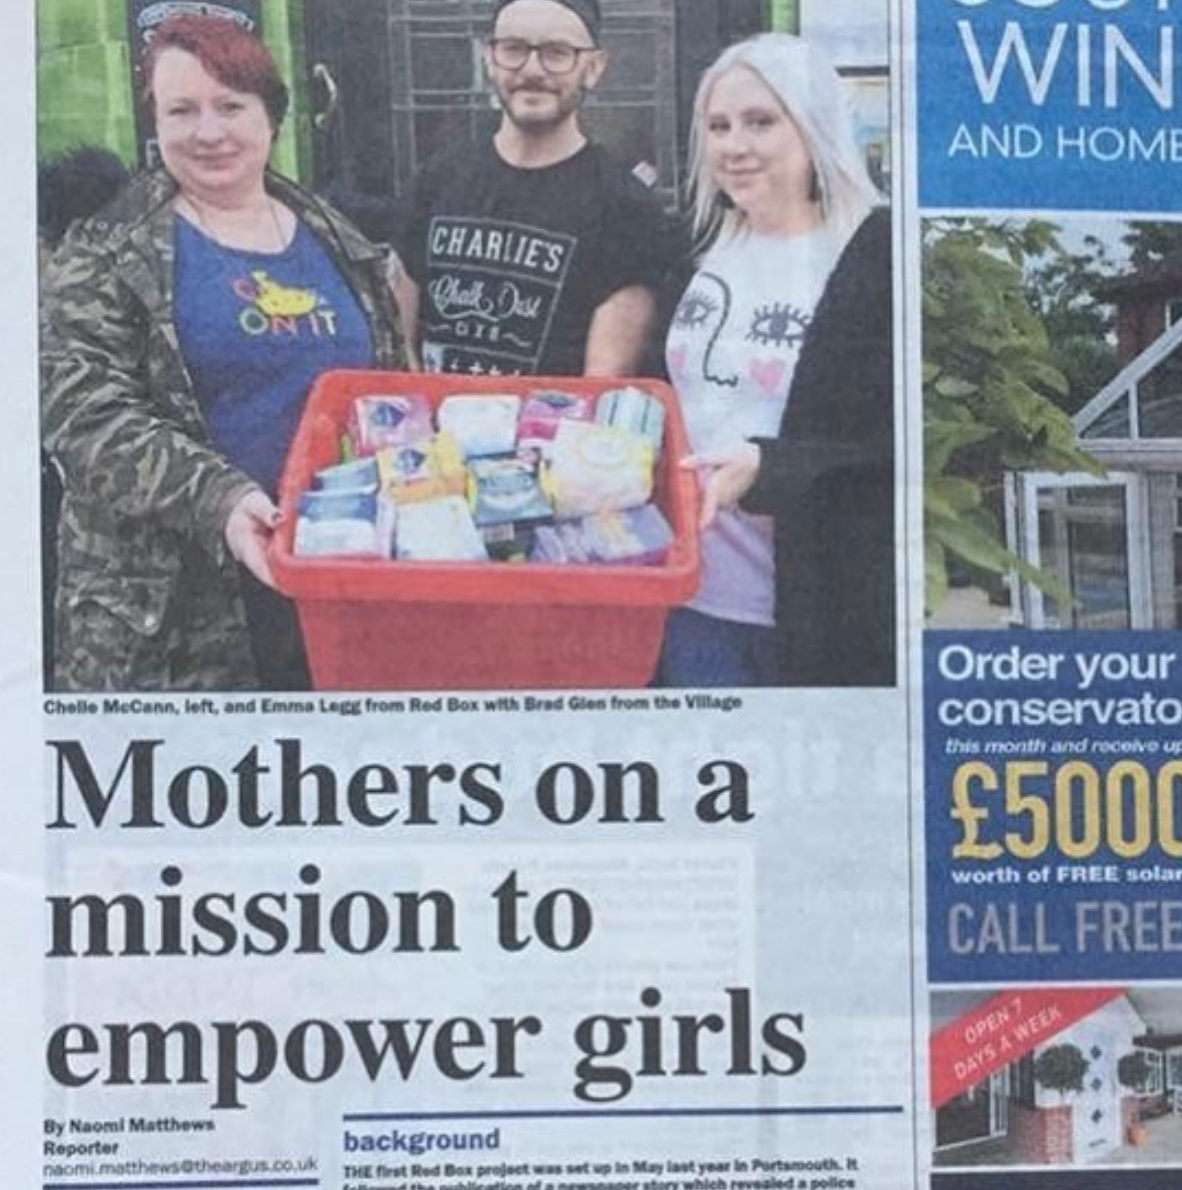 Fighting Period Poverty - The Red Box Project - The-Argus.jpg